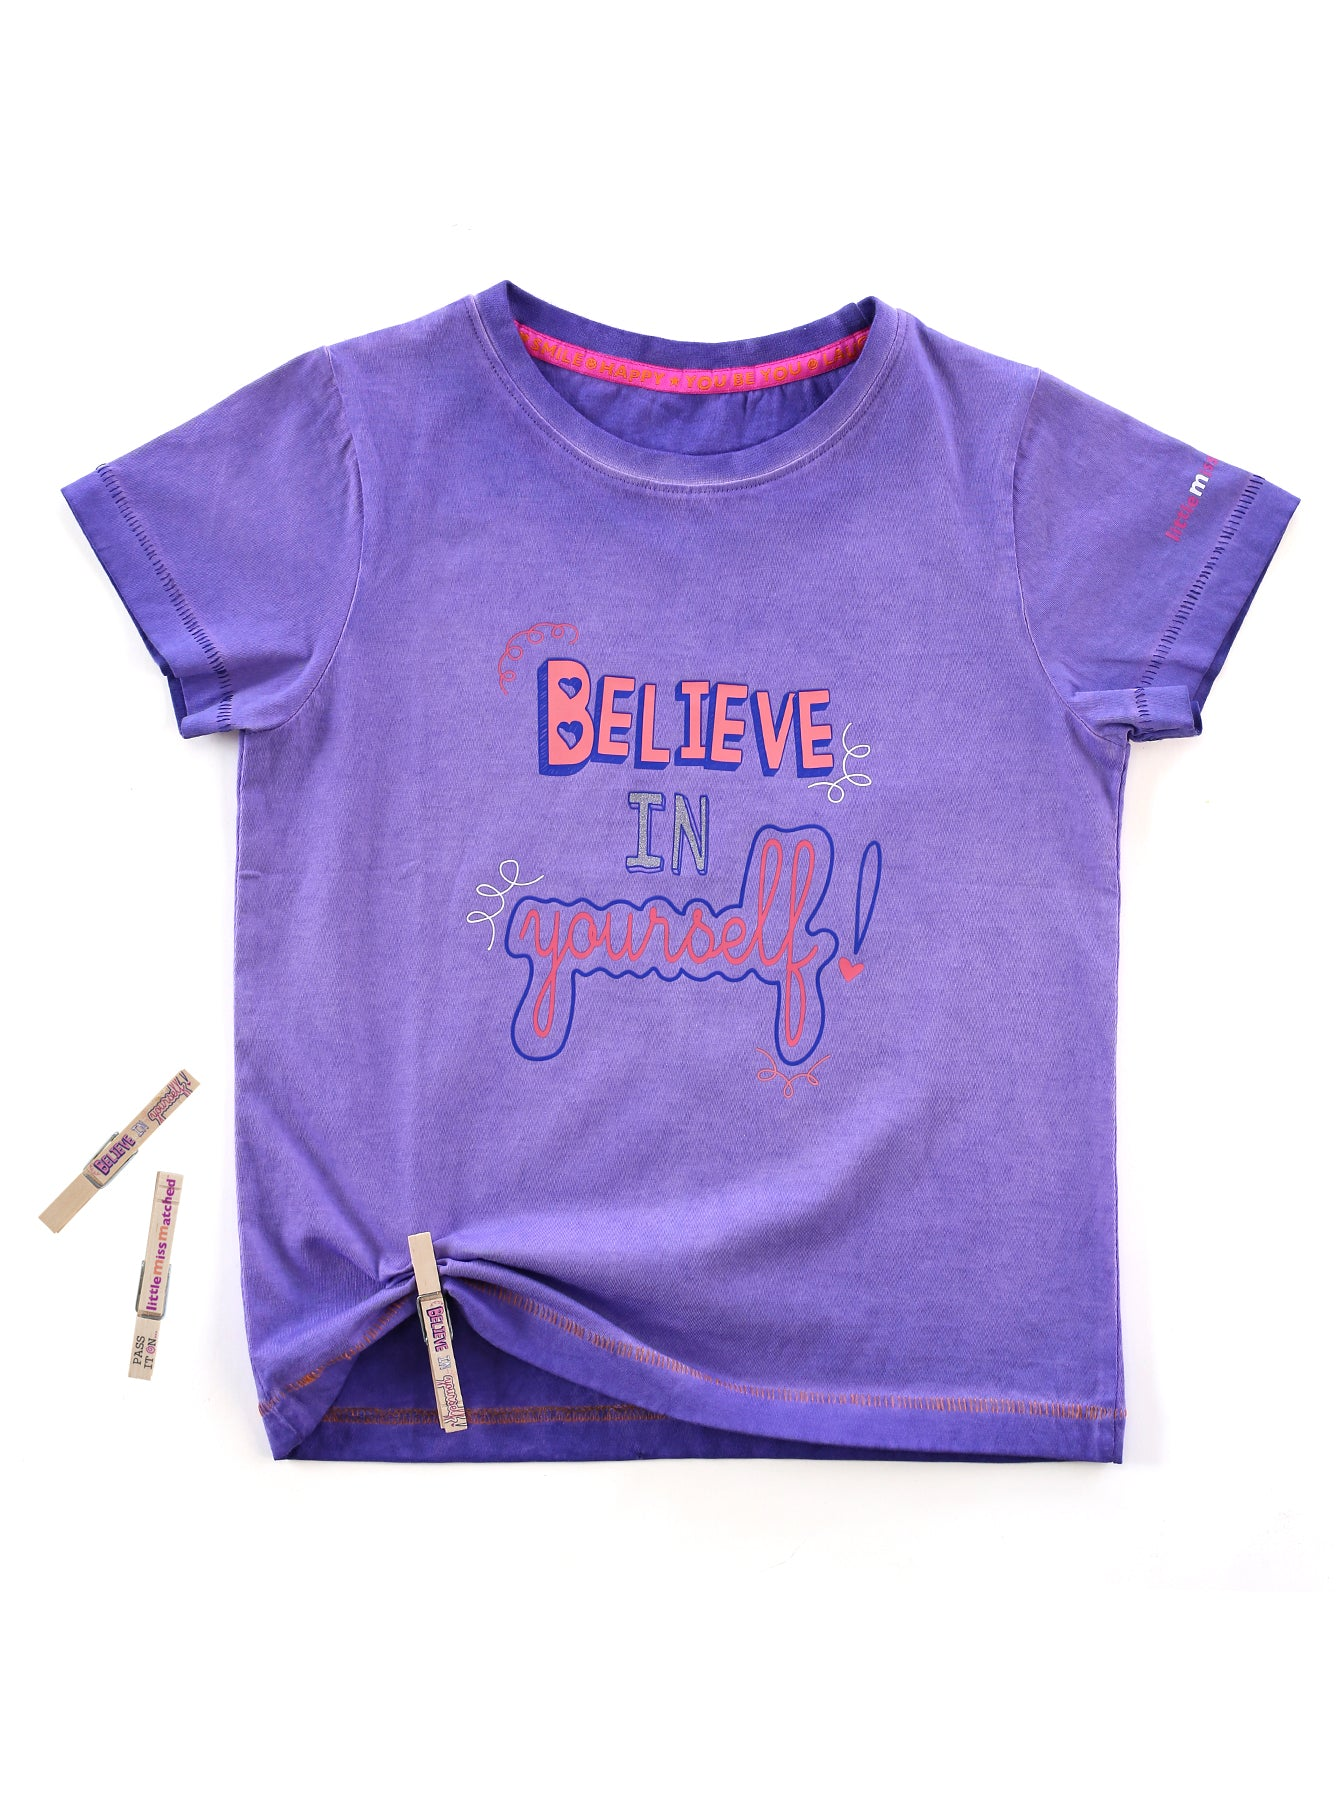 'BELIEVE IN YOURSELF' PASS-IT-ON TEE + 3 FREE KINDNESS PINS